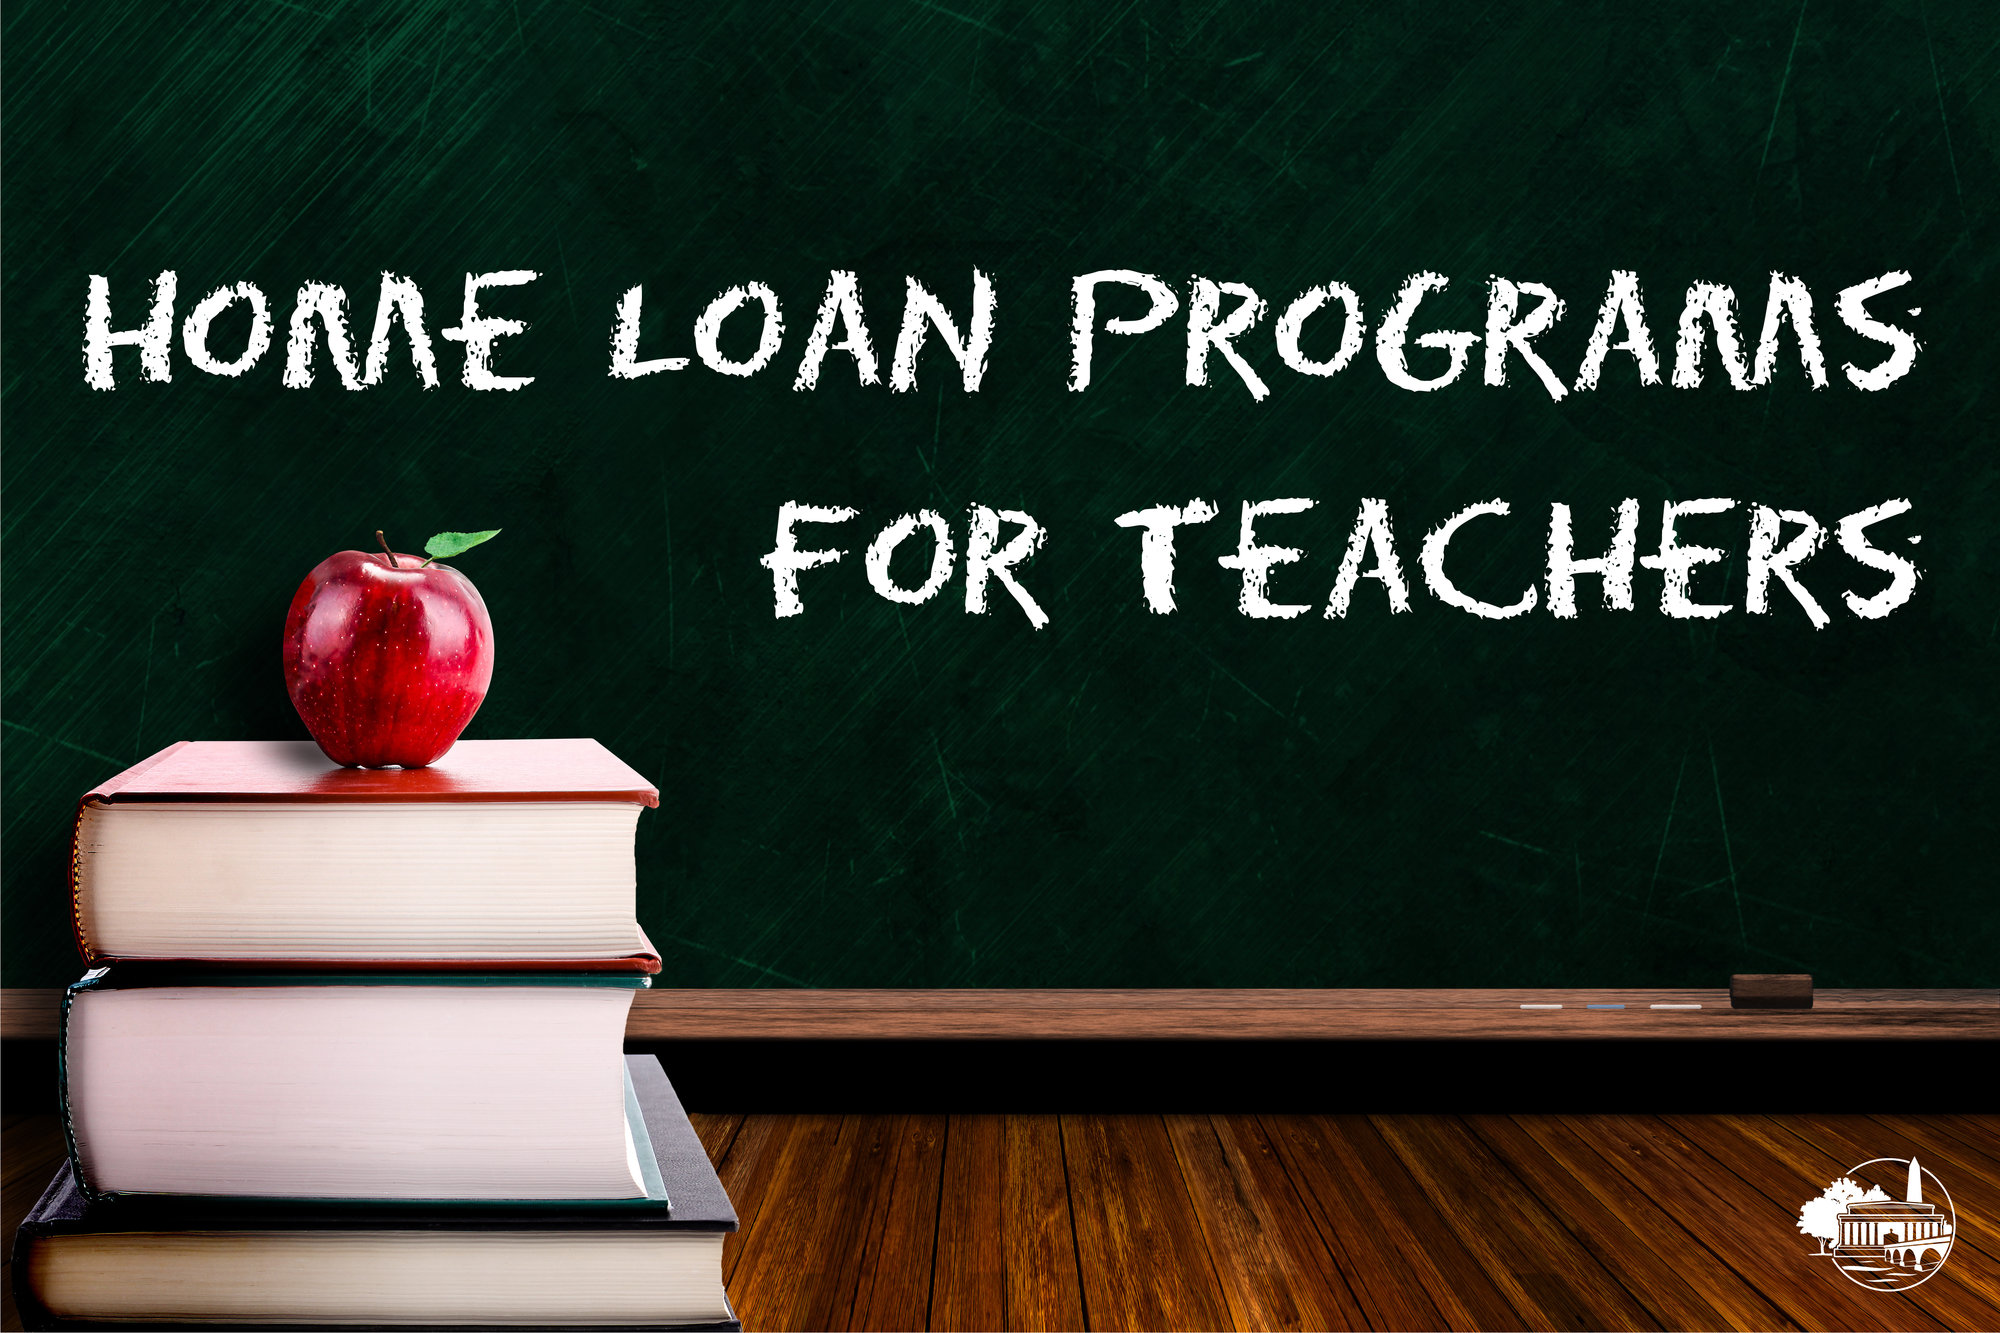 Home Loan Programs for Teachers